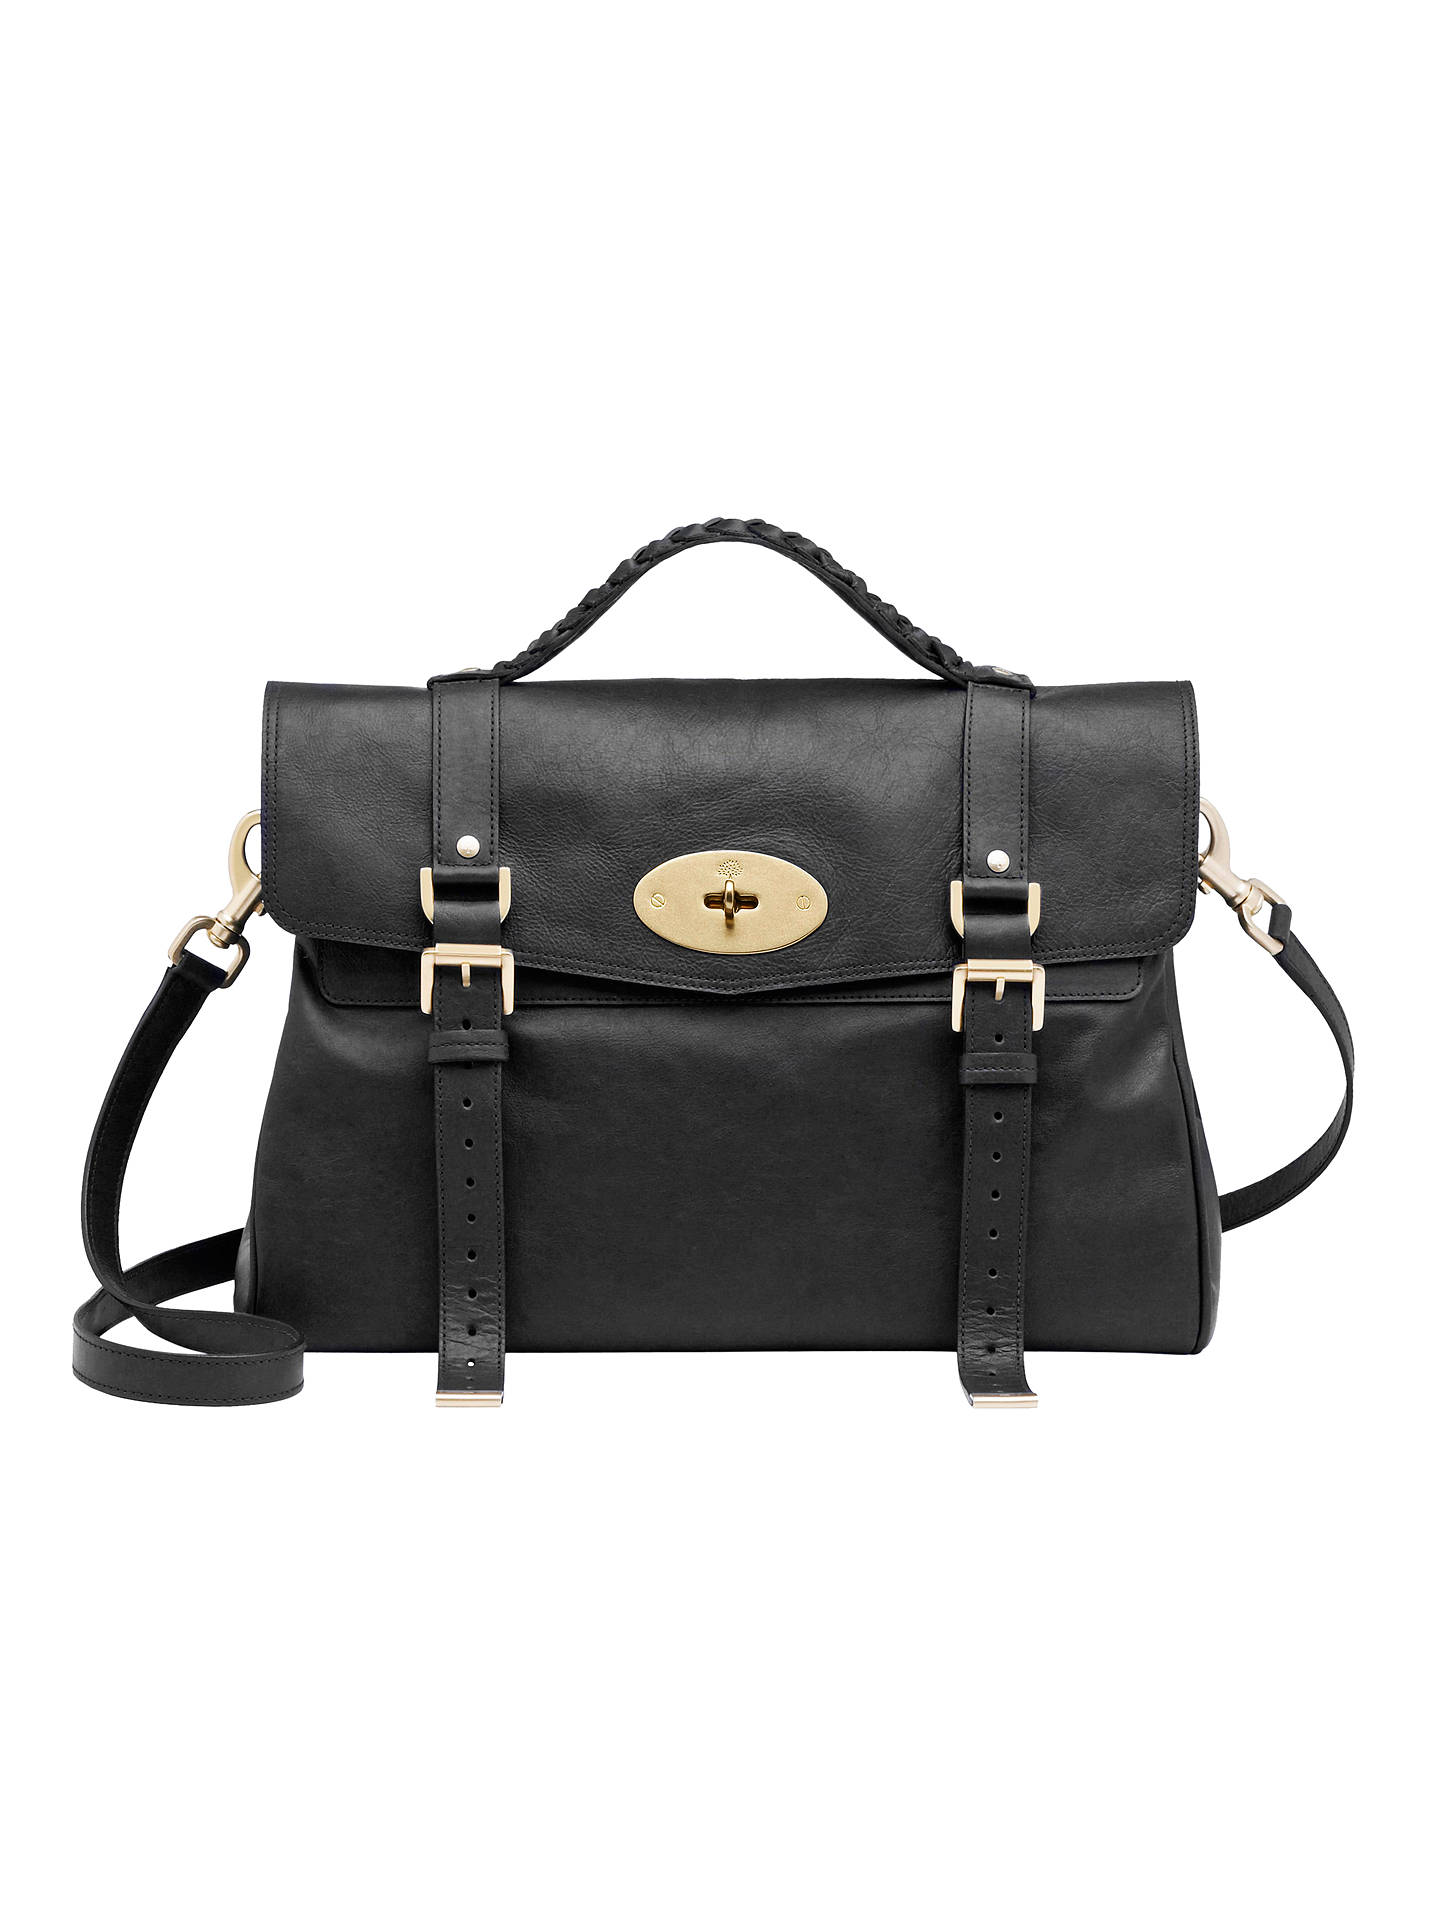 ... australia buymulberry oversized alexa messenger shoulder handbag black  online at johnlewis 3cc80 b2d91 2b7bade800f25